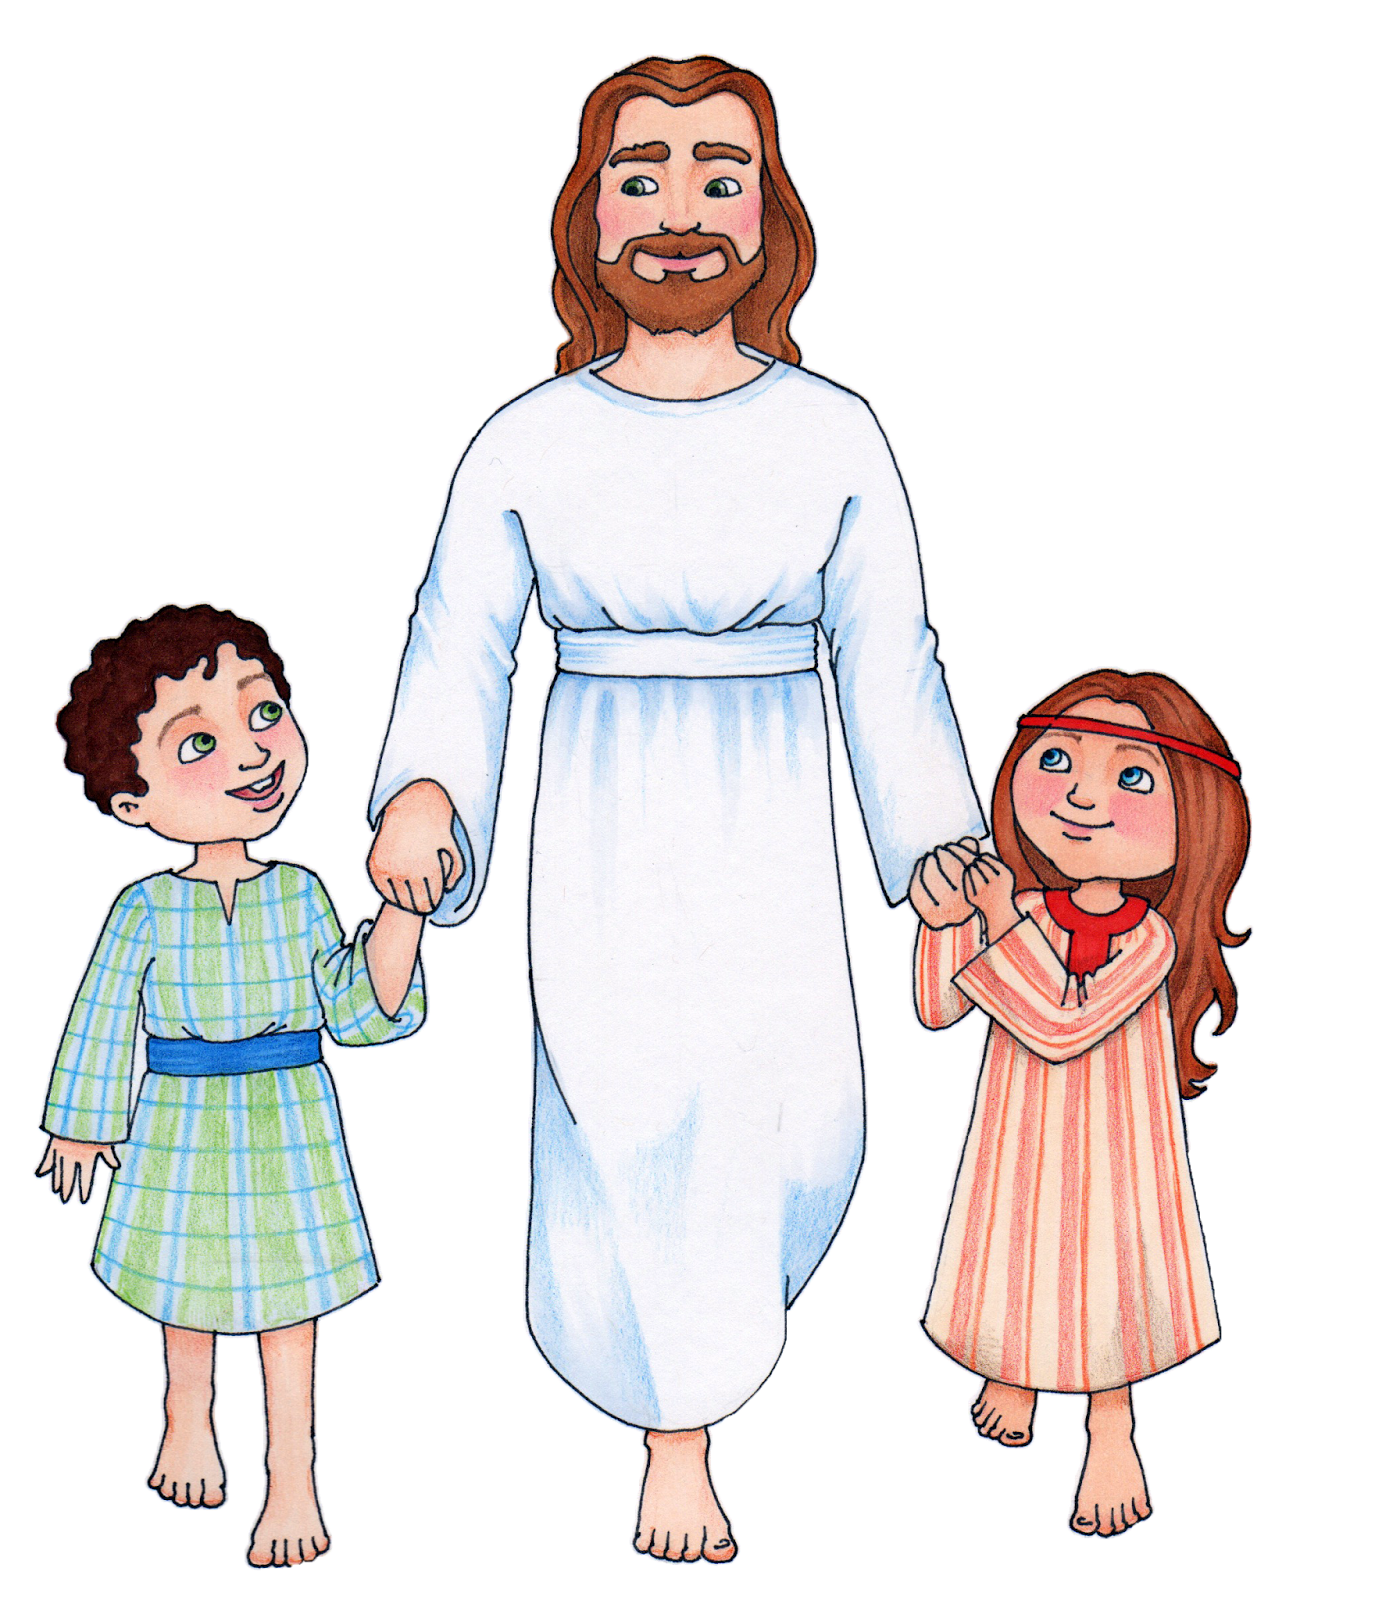 Jesus and children clipart clipart images gallery for free download.